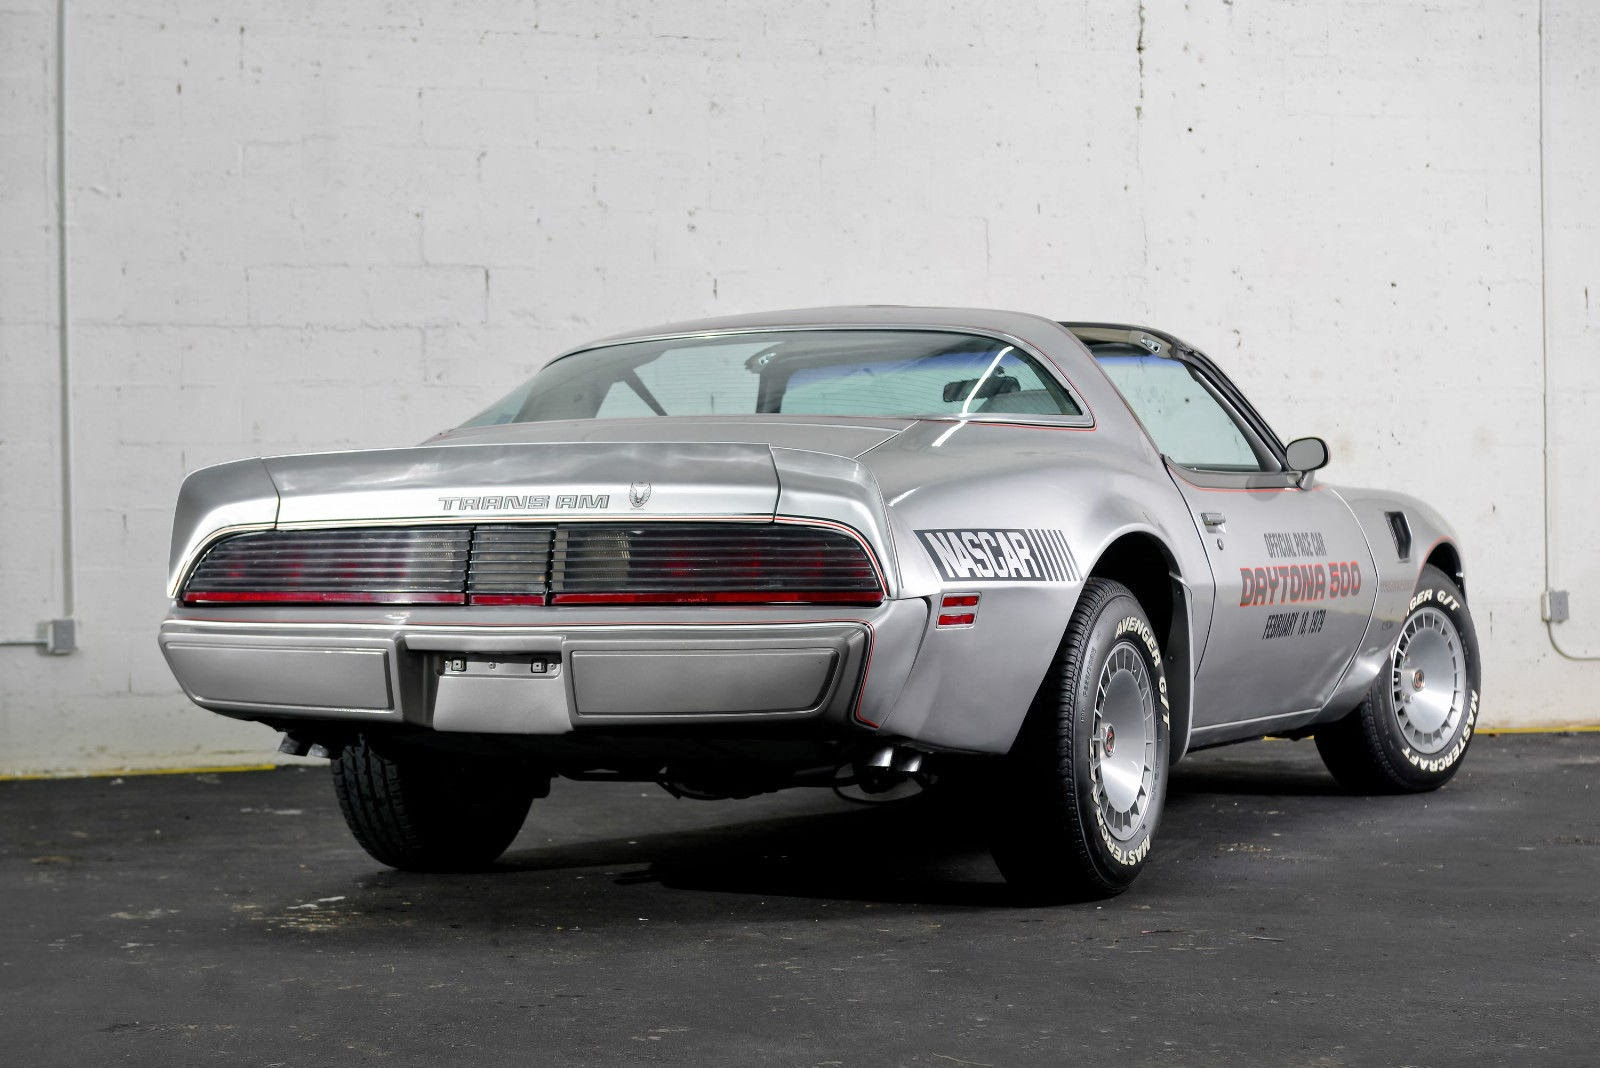 1979 Pontiac Trans Am 10th Anniversary Daytona Pace Car